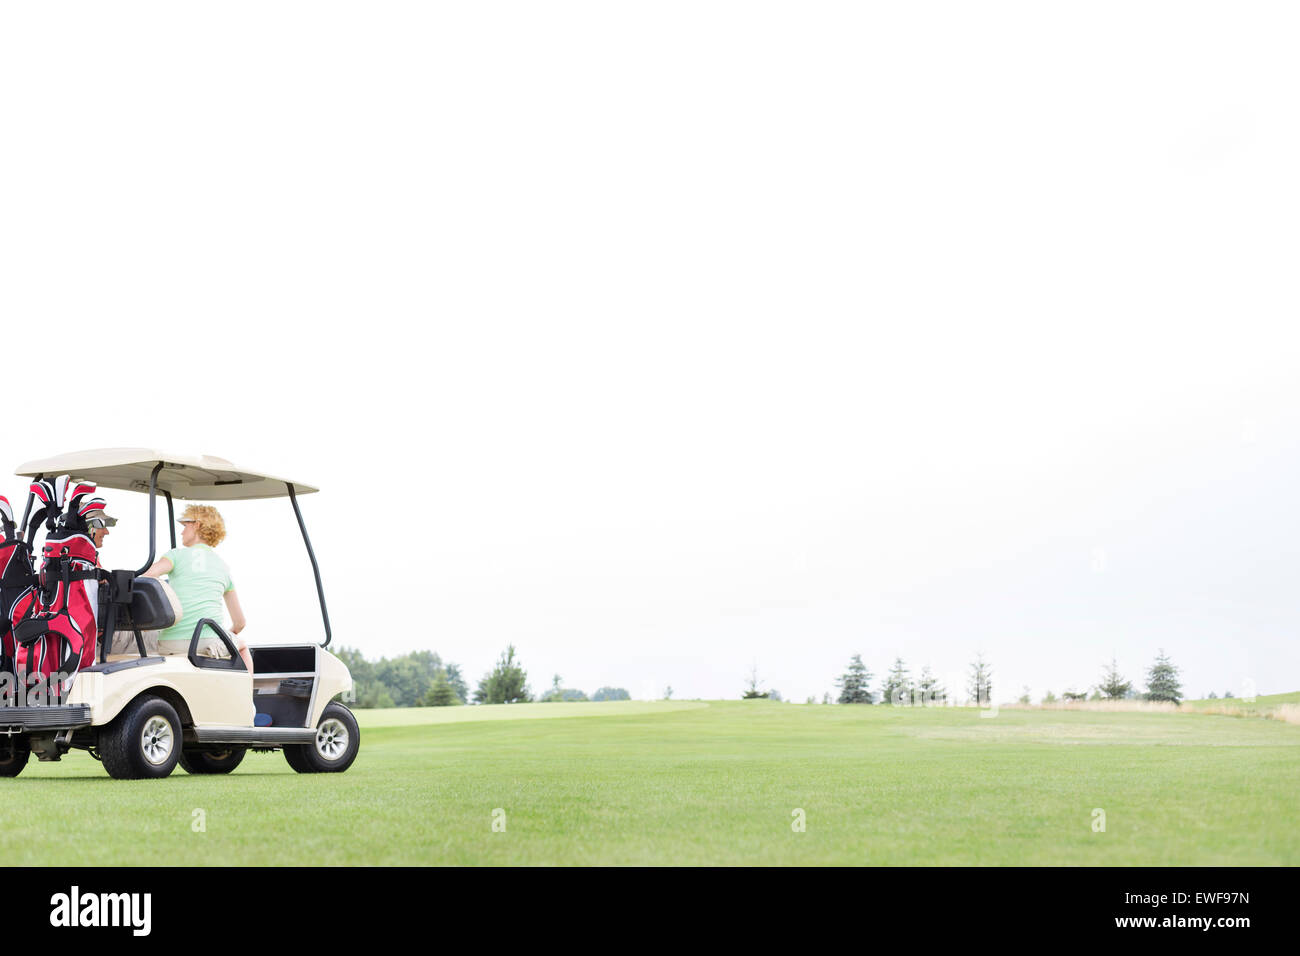 Couple sitting in golf cart against clear sky Stock Photo: 84544425 on sky candles, sky sunglasses, sky bags, sky wheels, sky games, sky comedy, sky cars, sky lifts,